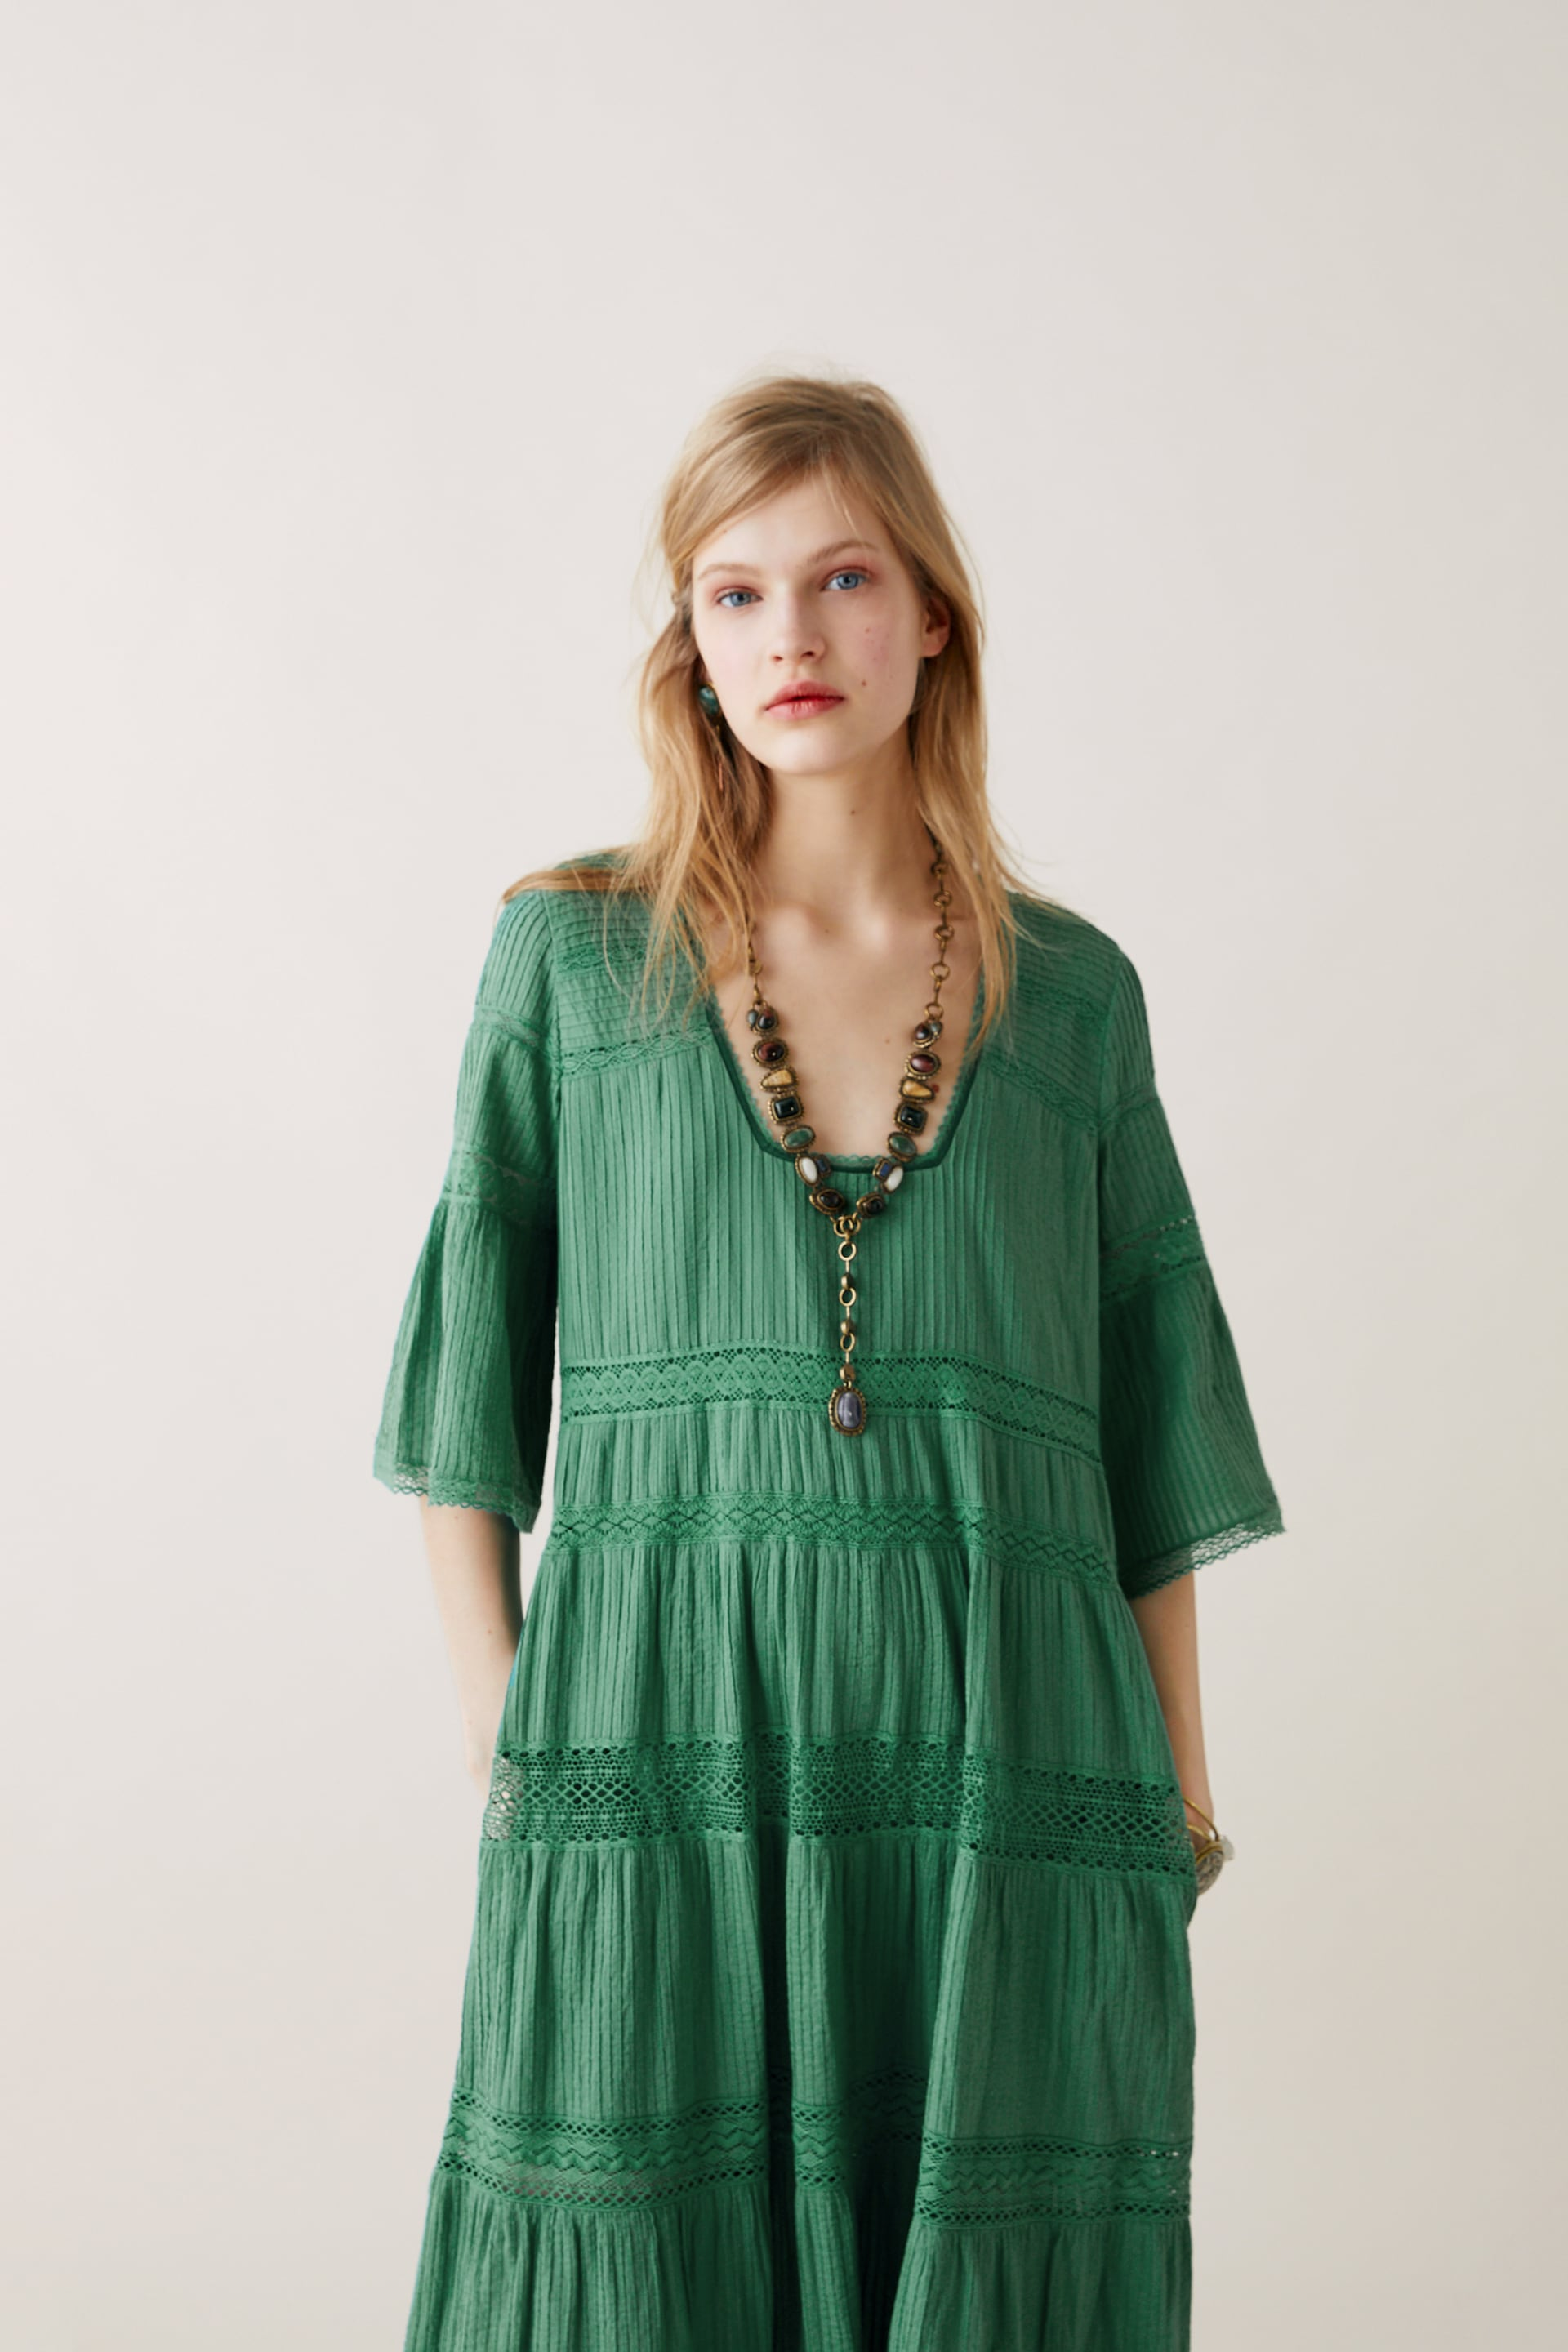 694105dd7b0 LIMITED EDITION ZARA STUDIO EMBROIDERED DRESS - View all-DRESSES ...